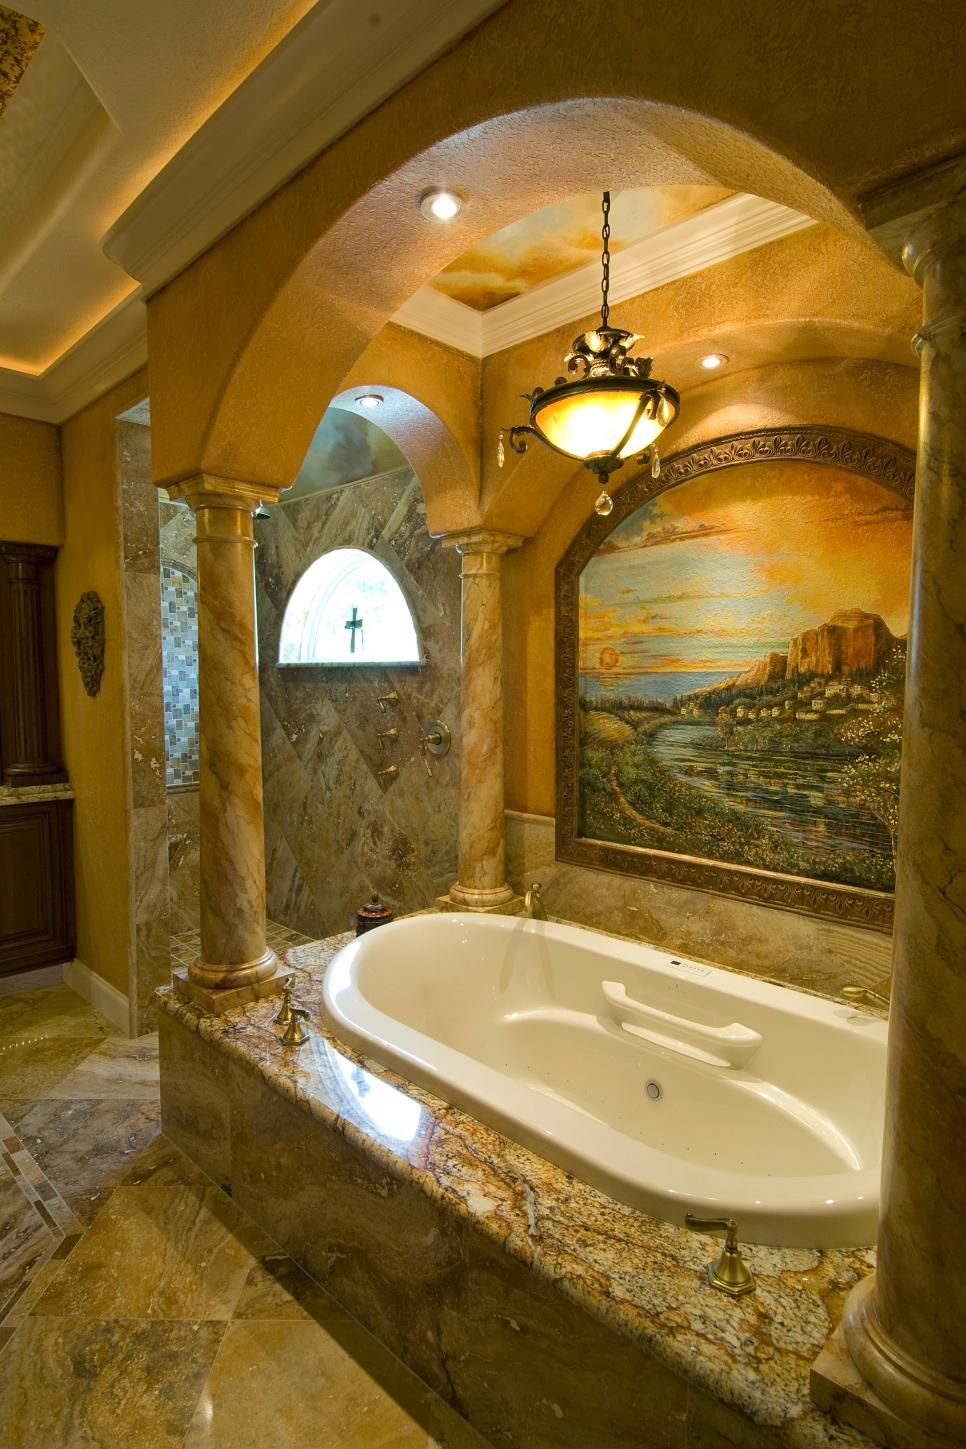 Stone columns connected with arches section off the bathtub in this ...